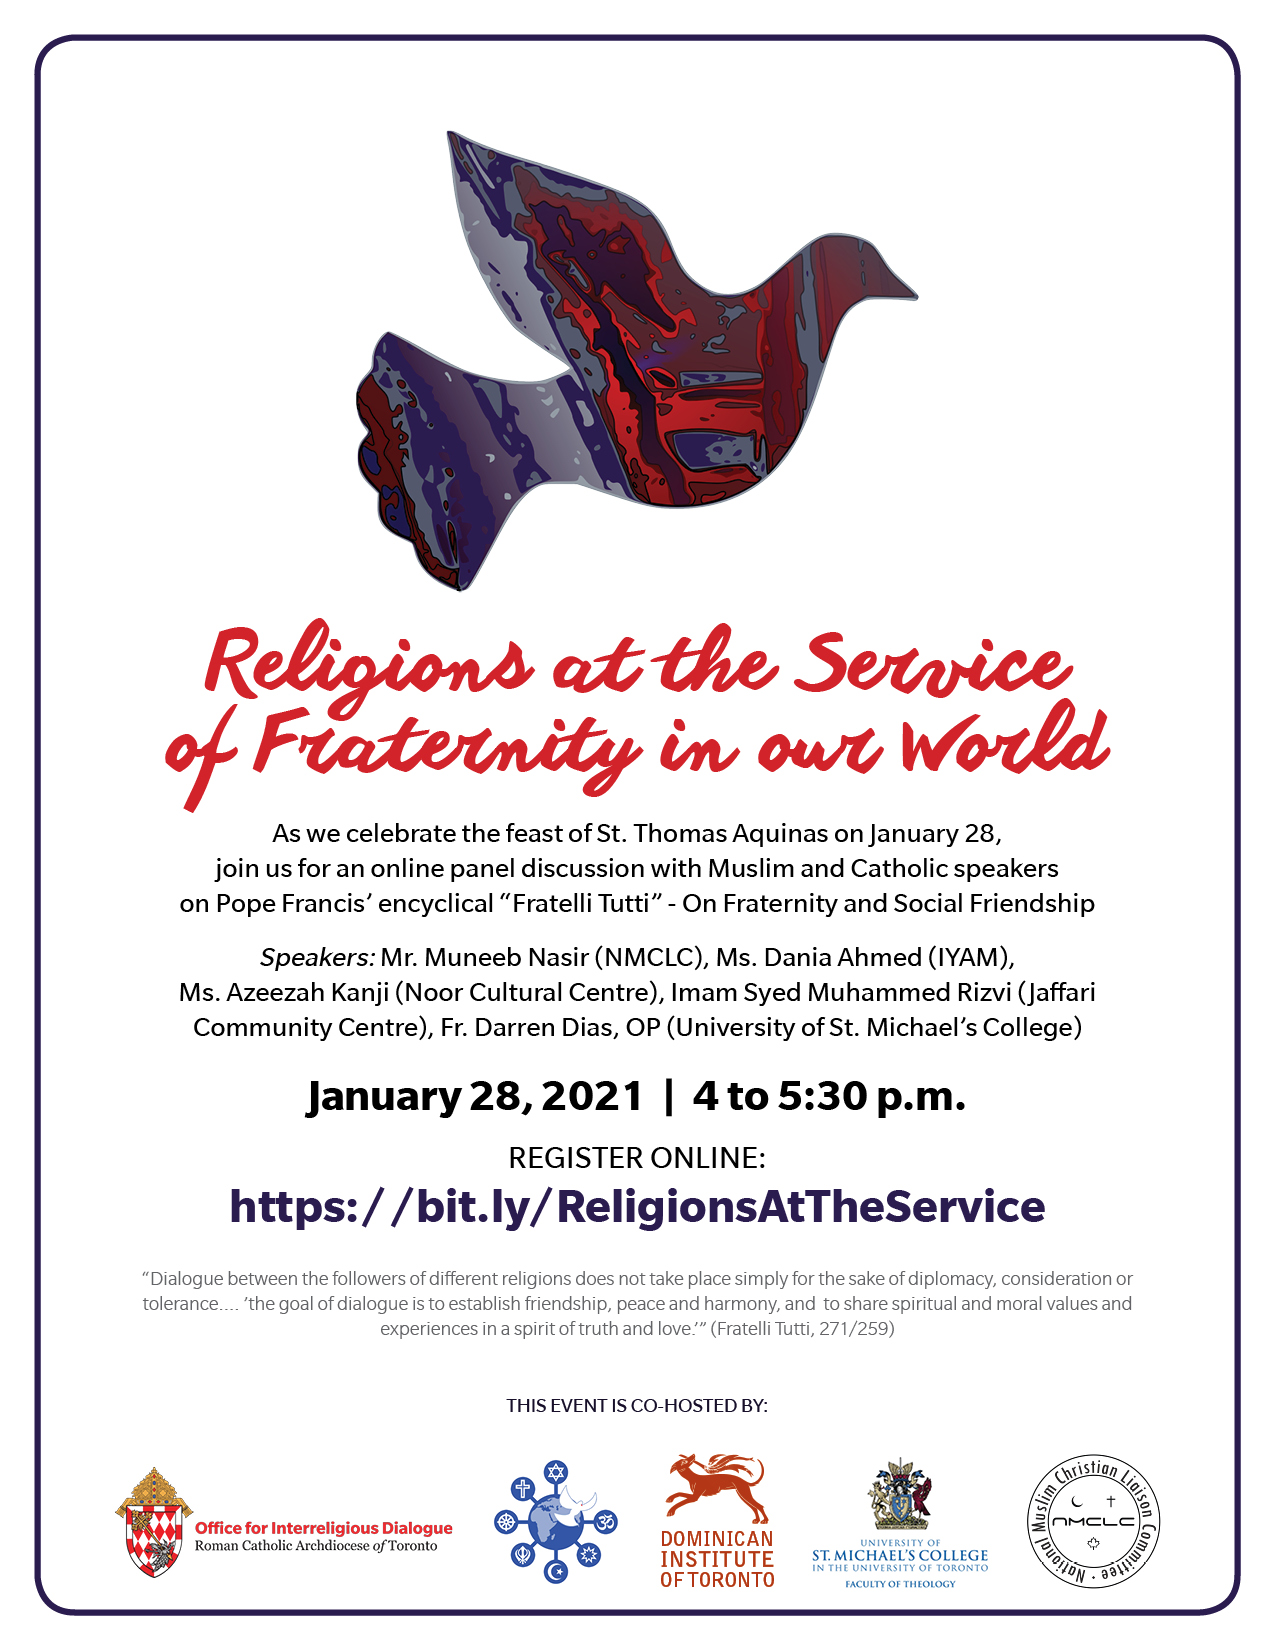 from Denise-jan28-religions-at-the-service